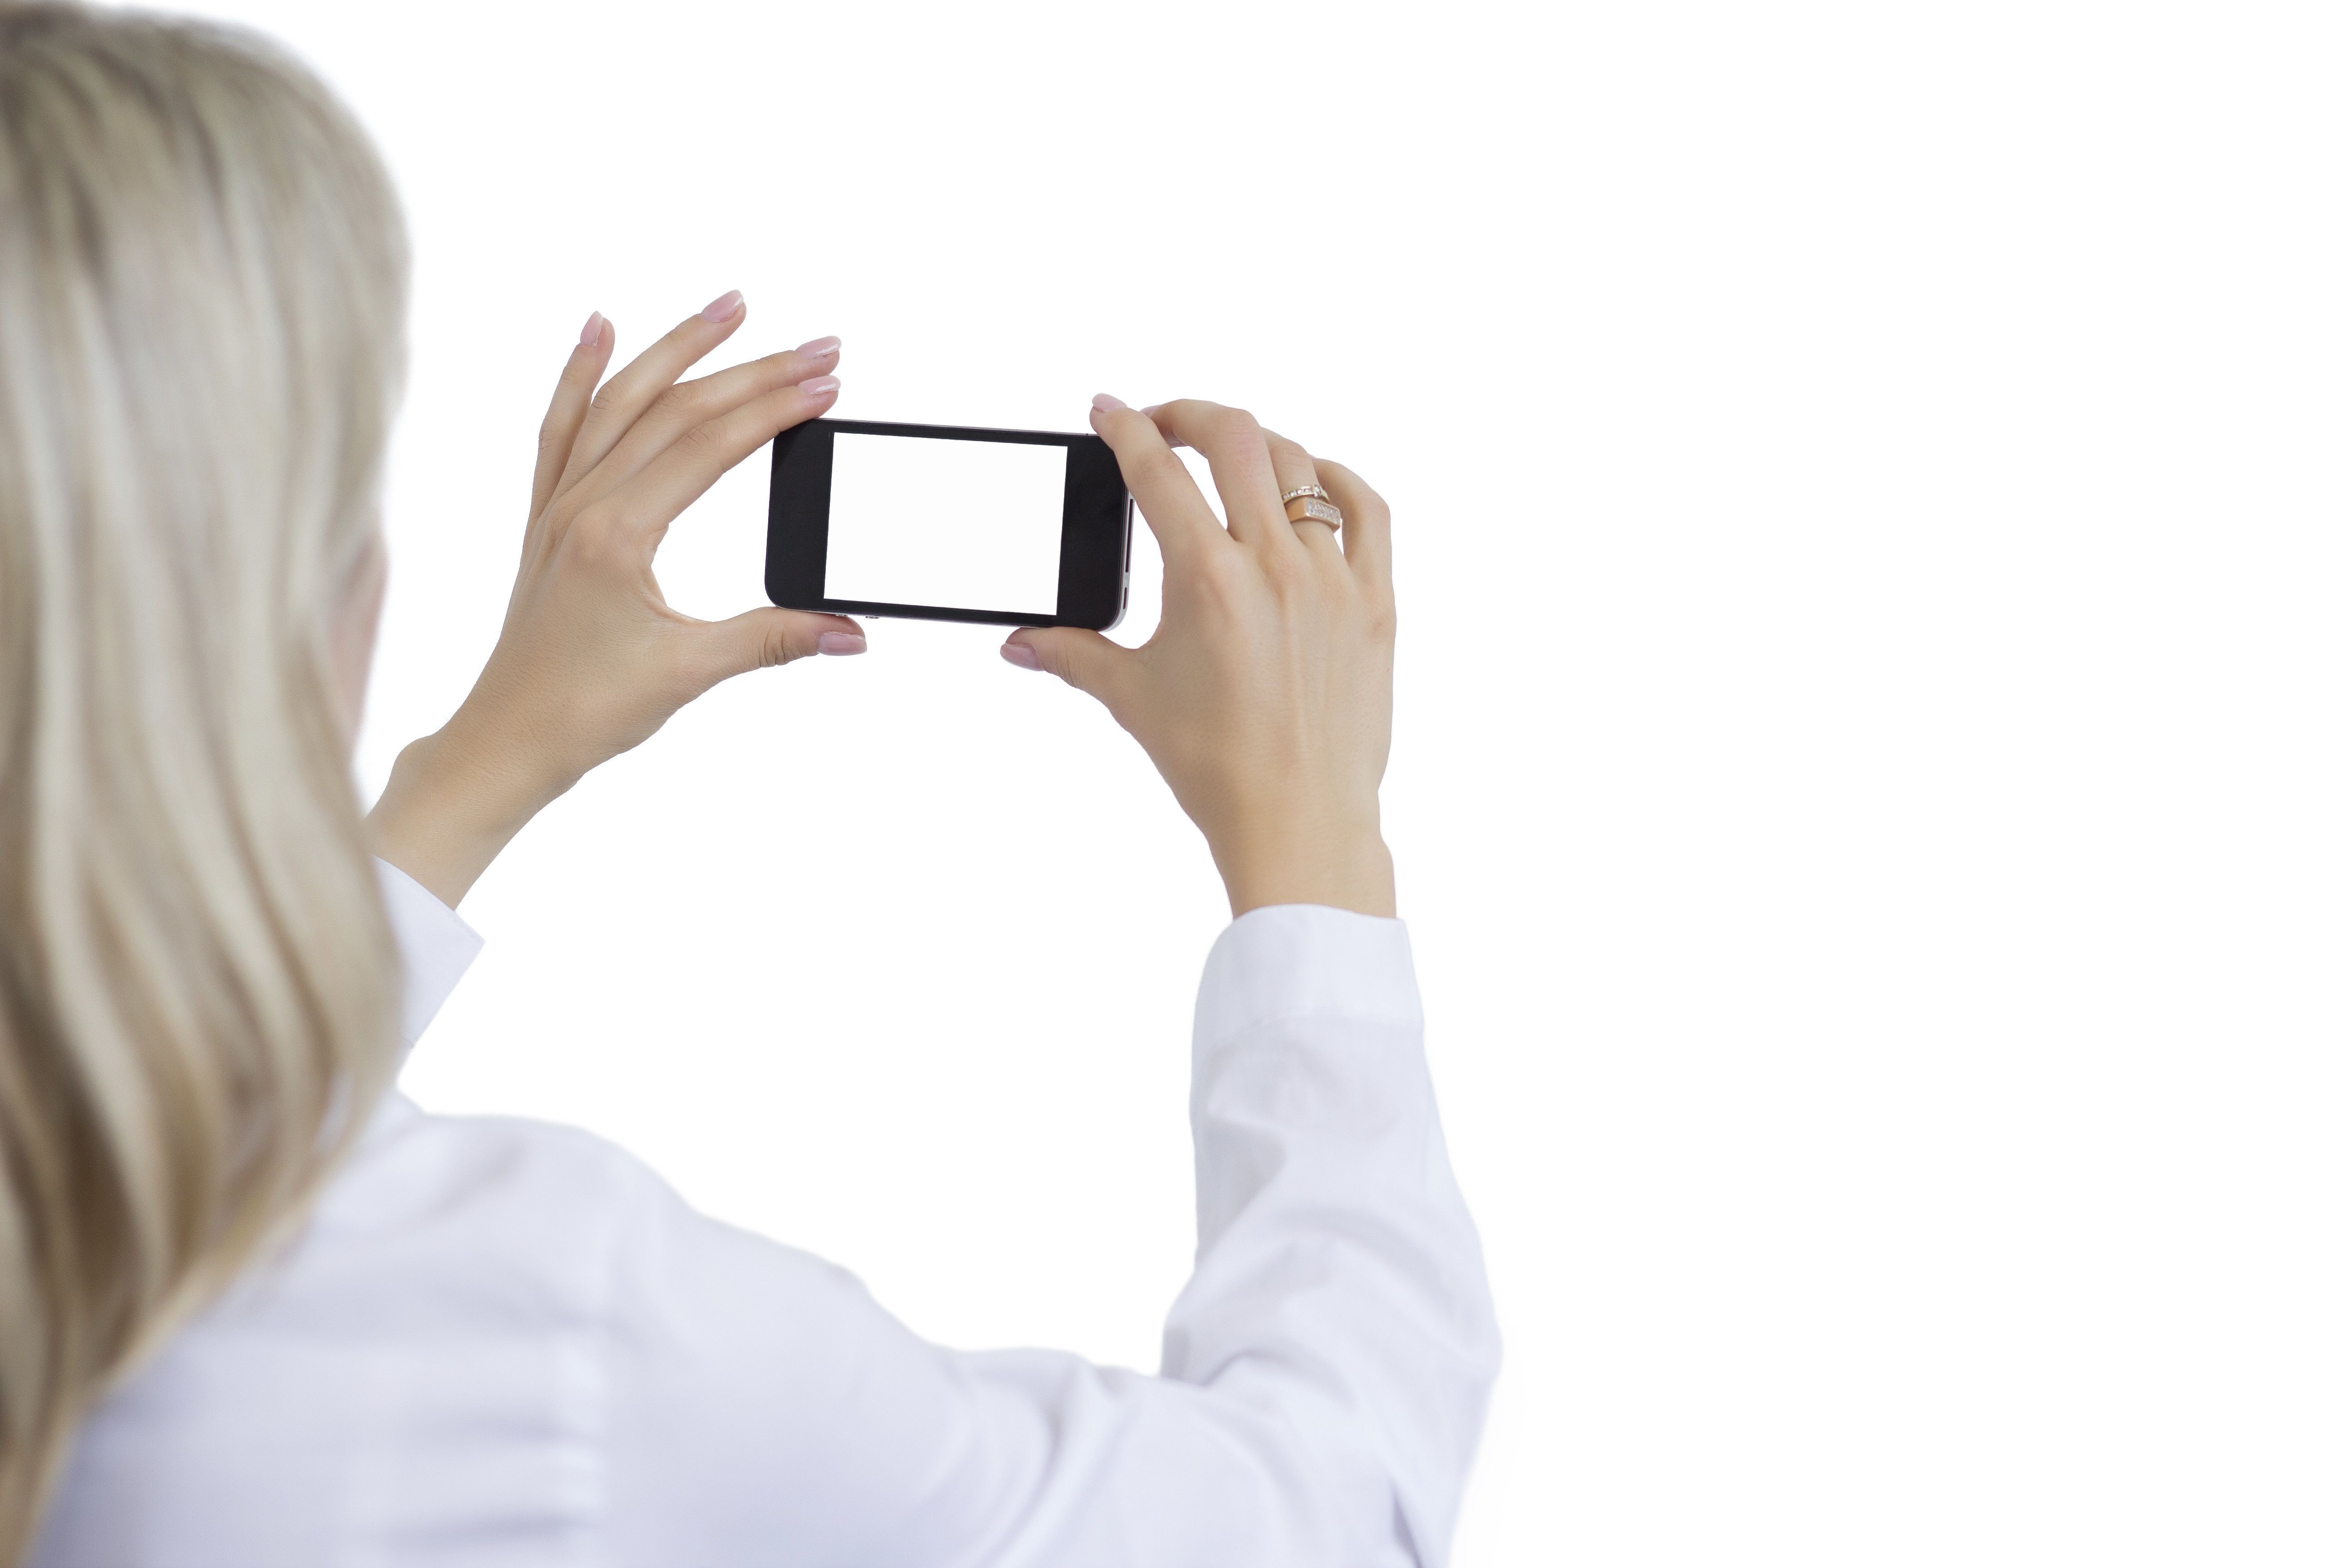 Woman taking photo with mobile phone. Isolated white background and empty phone's screen for your own image.